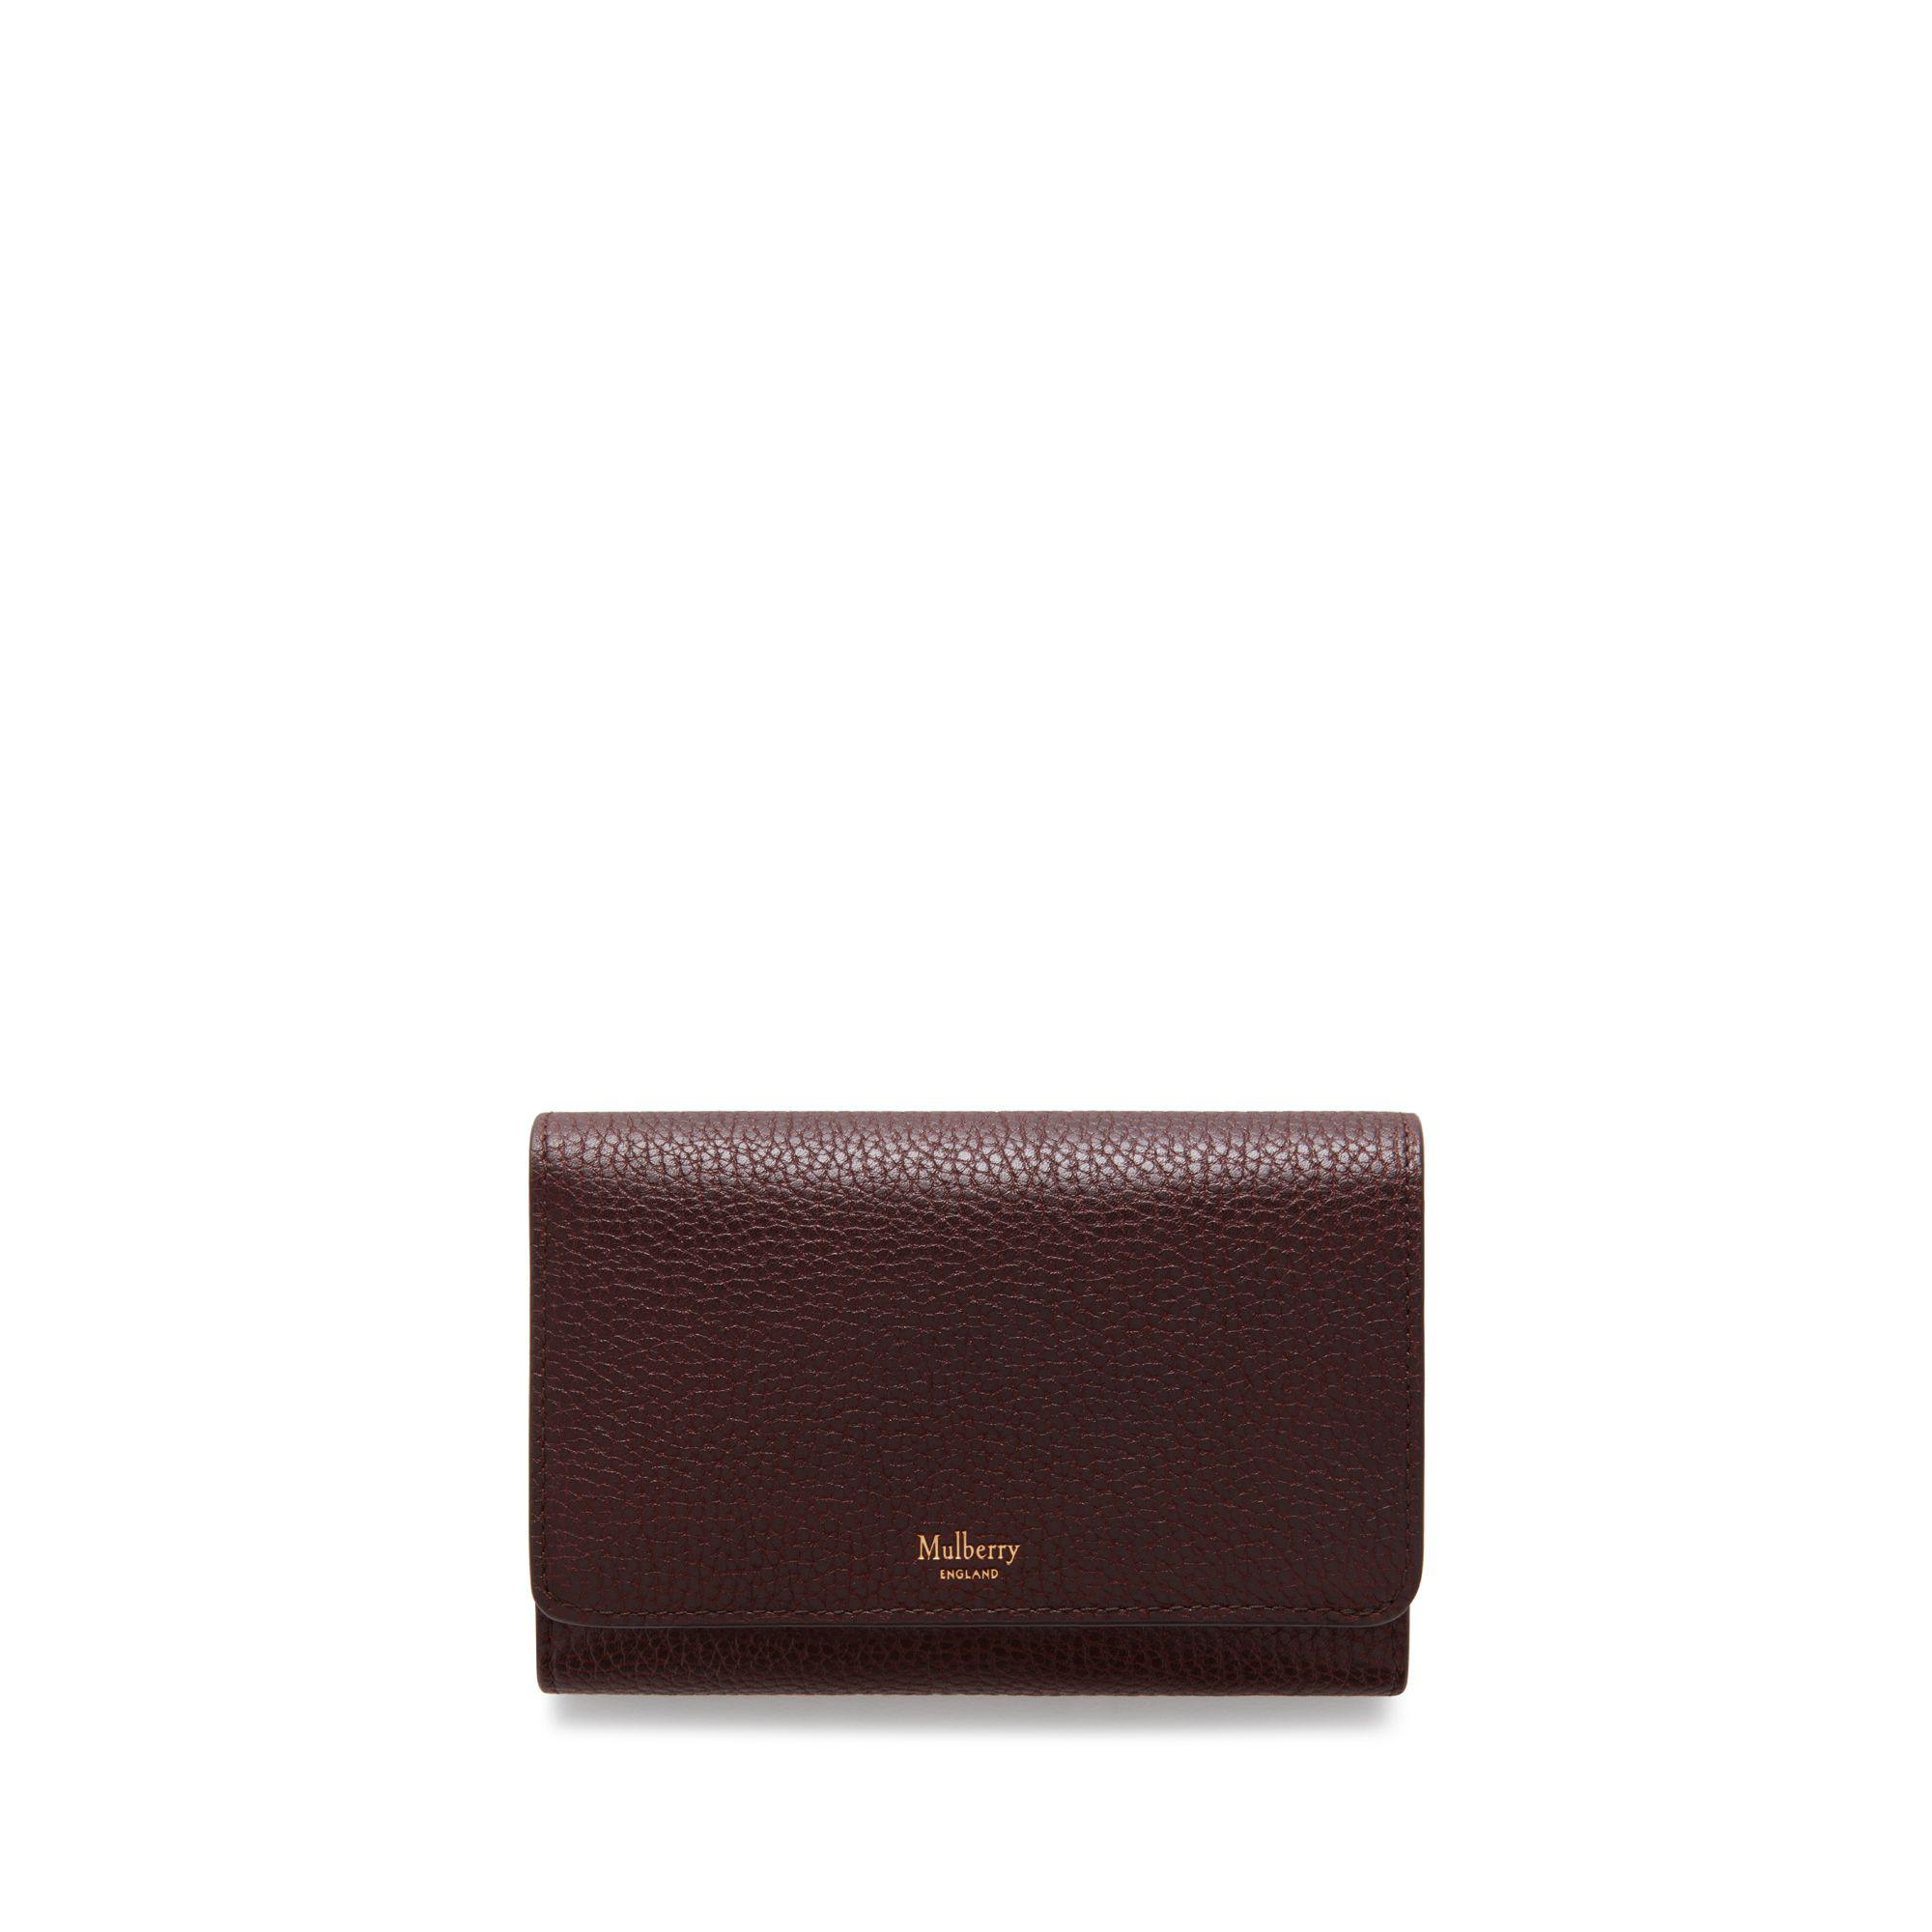 6a79149327342 Mulberry - Multicolor Medium Continental French Purse In Oxblood Natural Grain  Leather - Lyst. View fullscreen